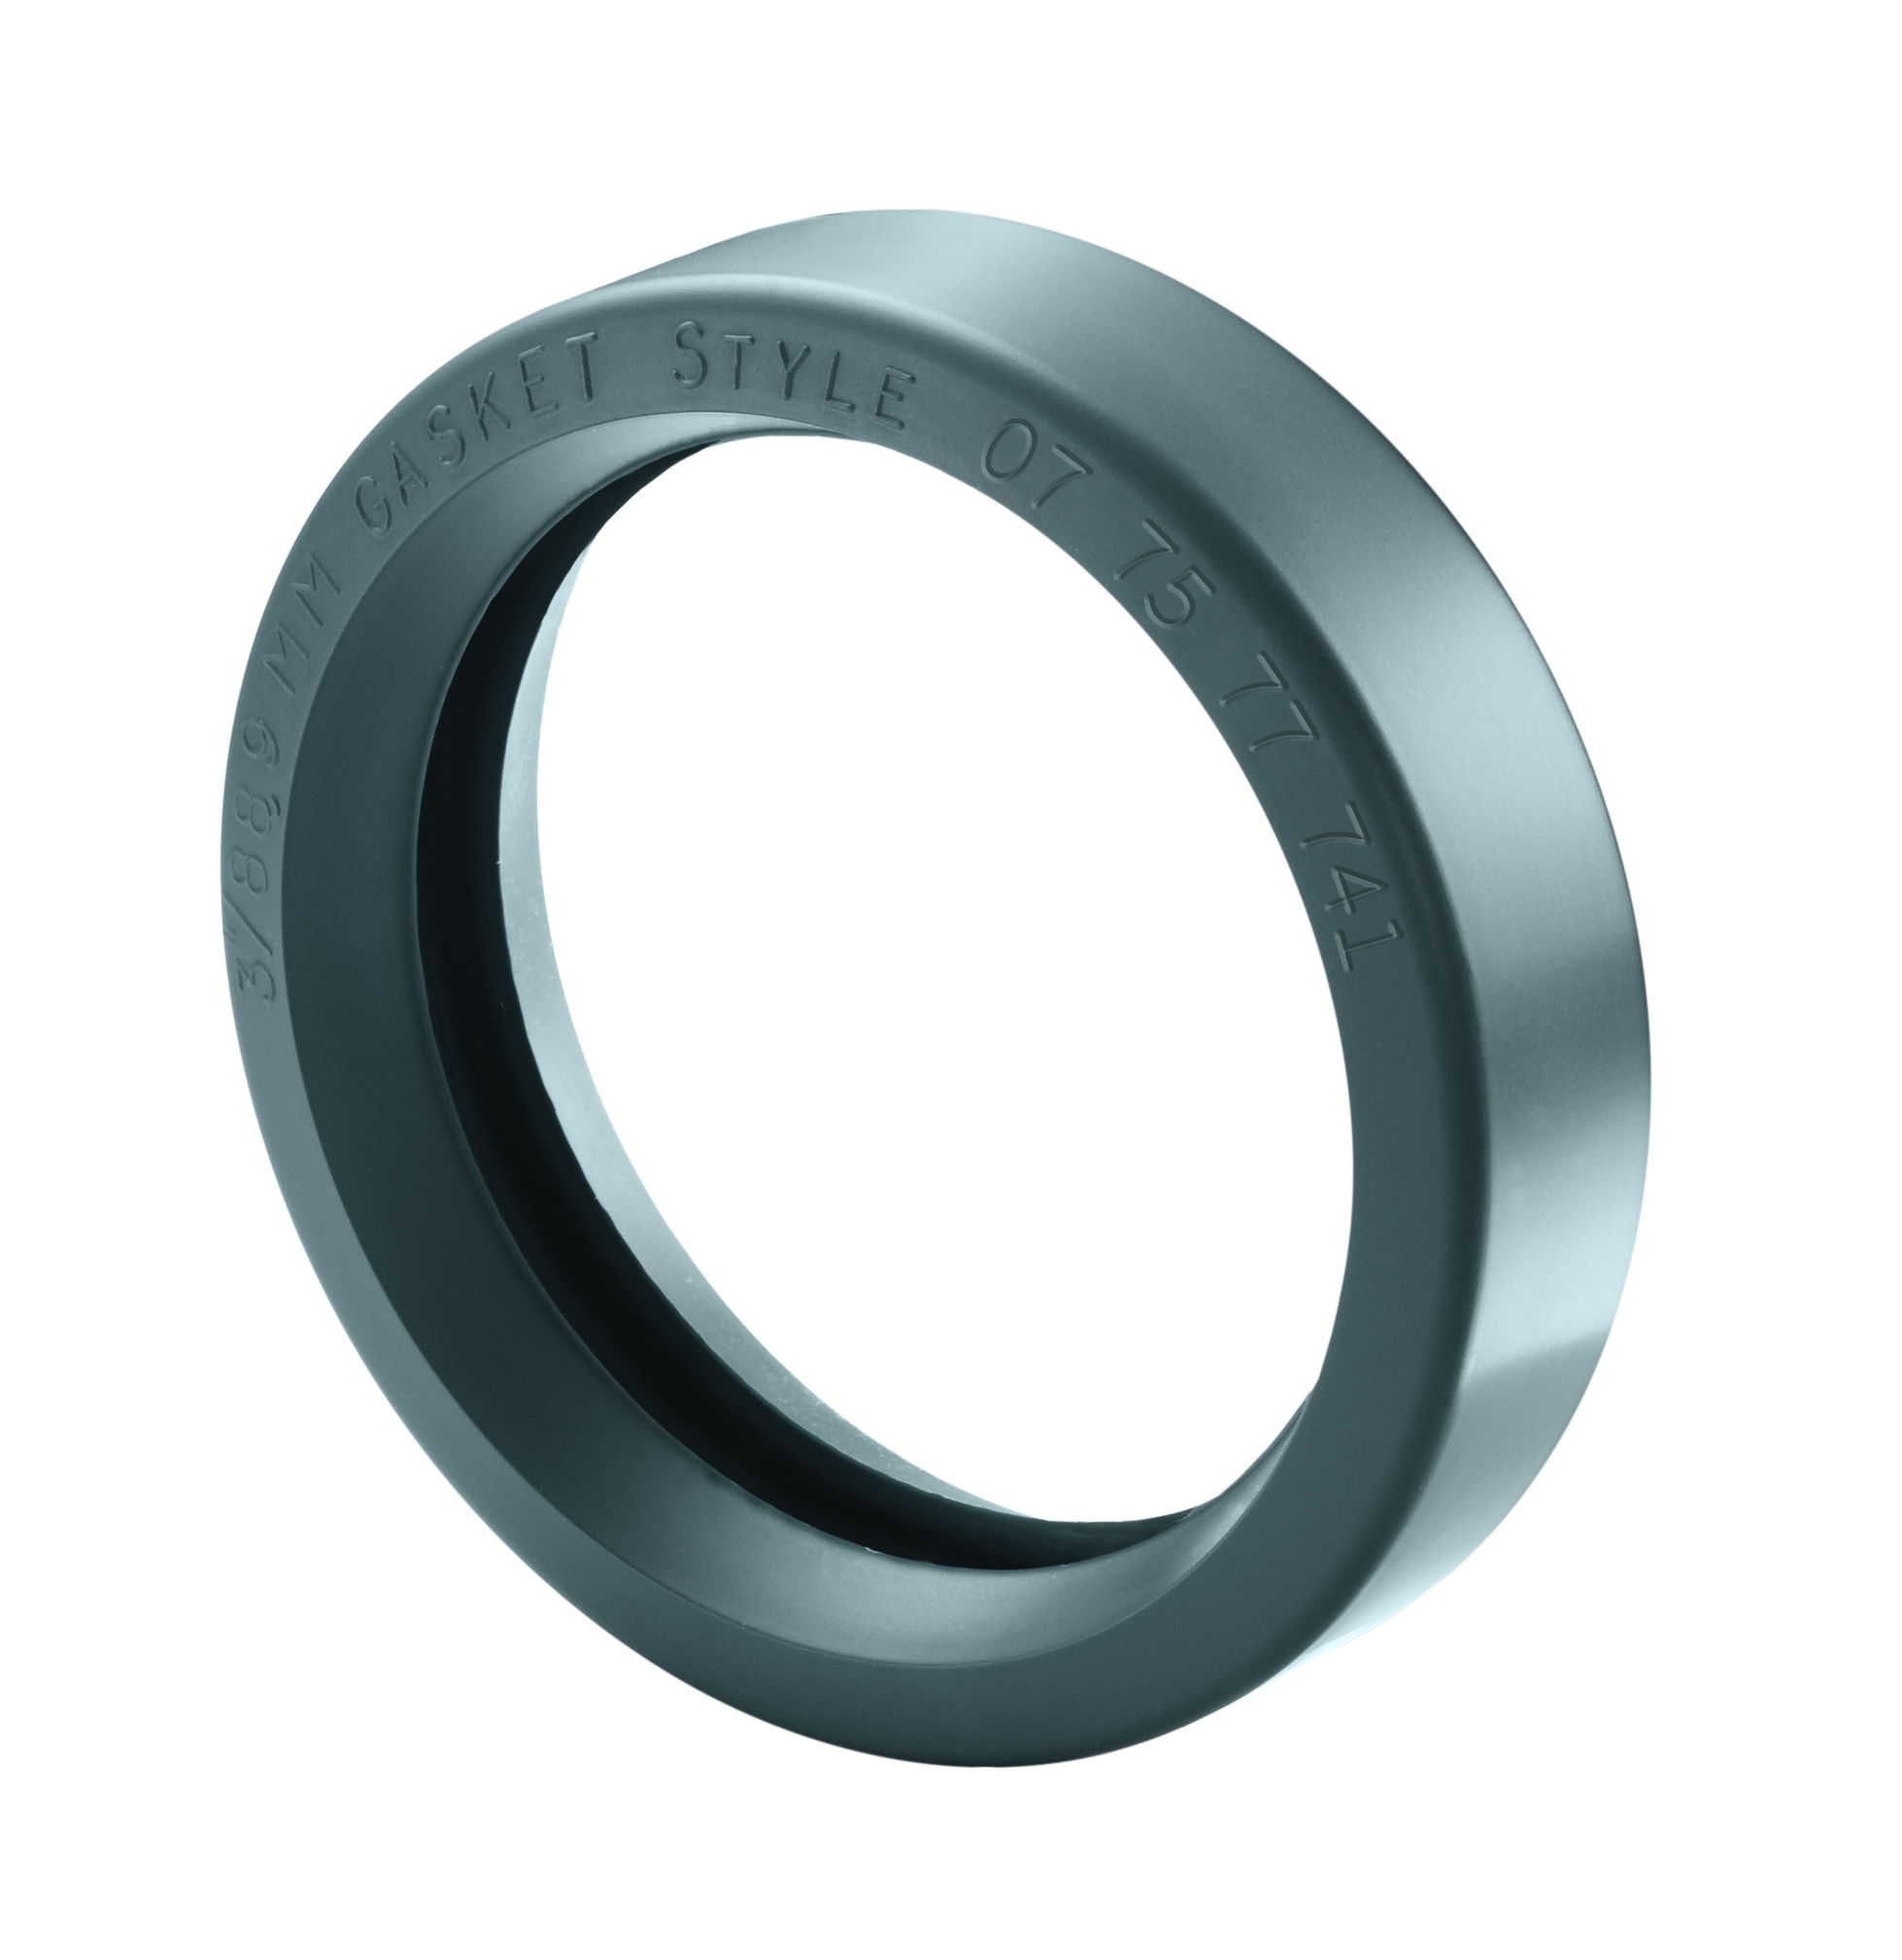 New victaulic gasket for maritime industry simplifies